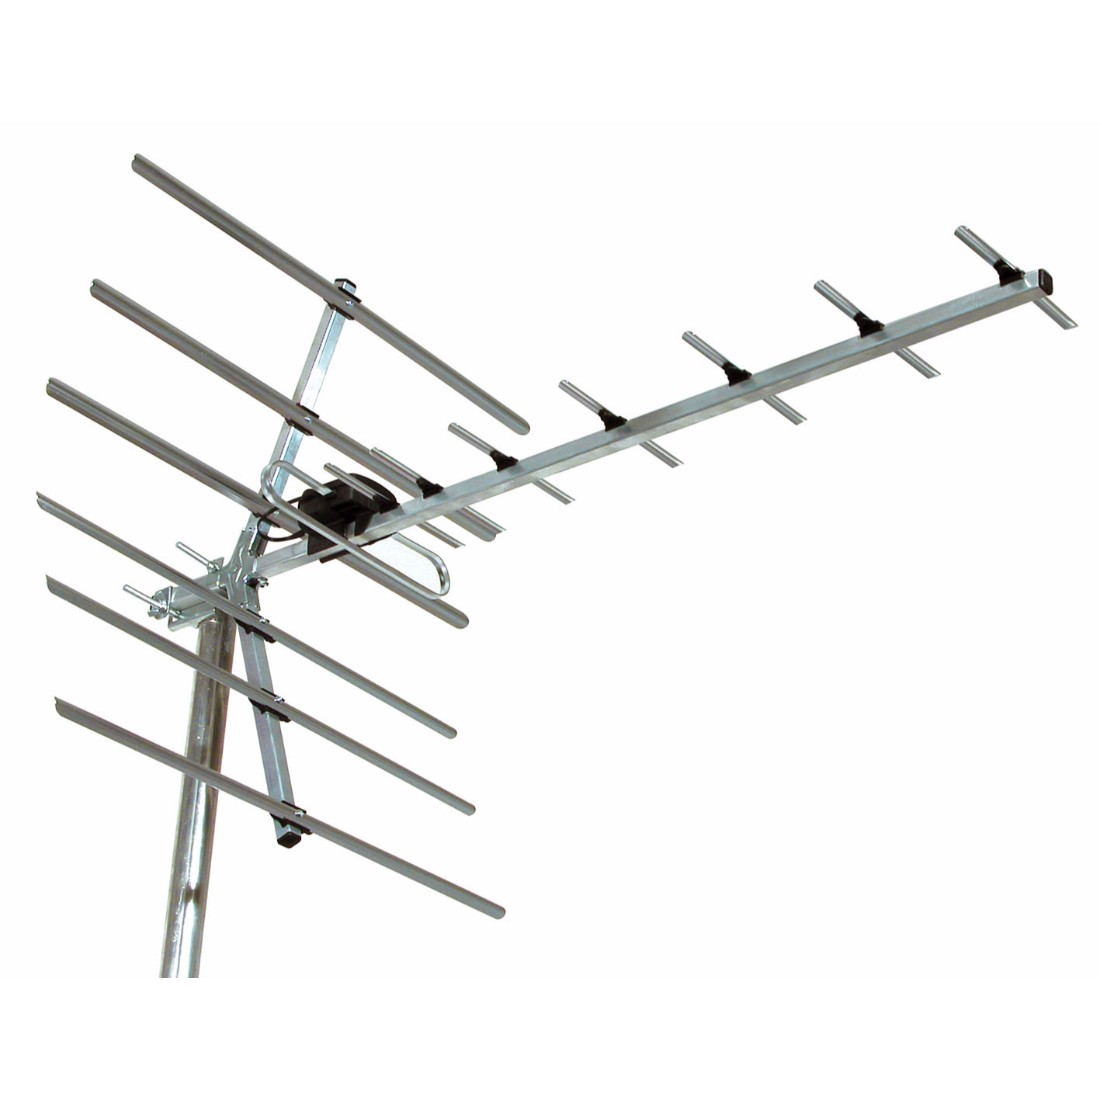 Slx 4g 14 Element Digital Tv Aerial